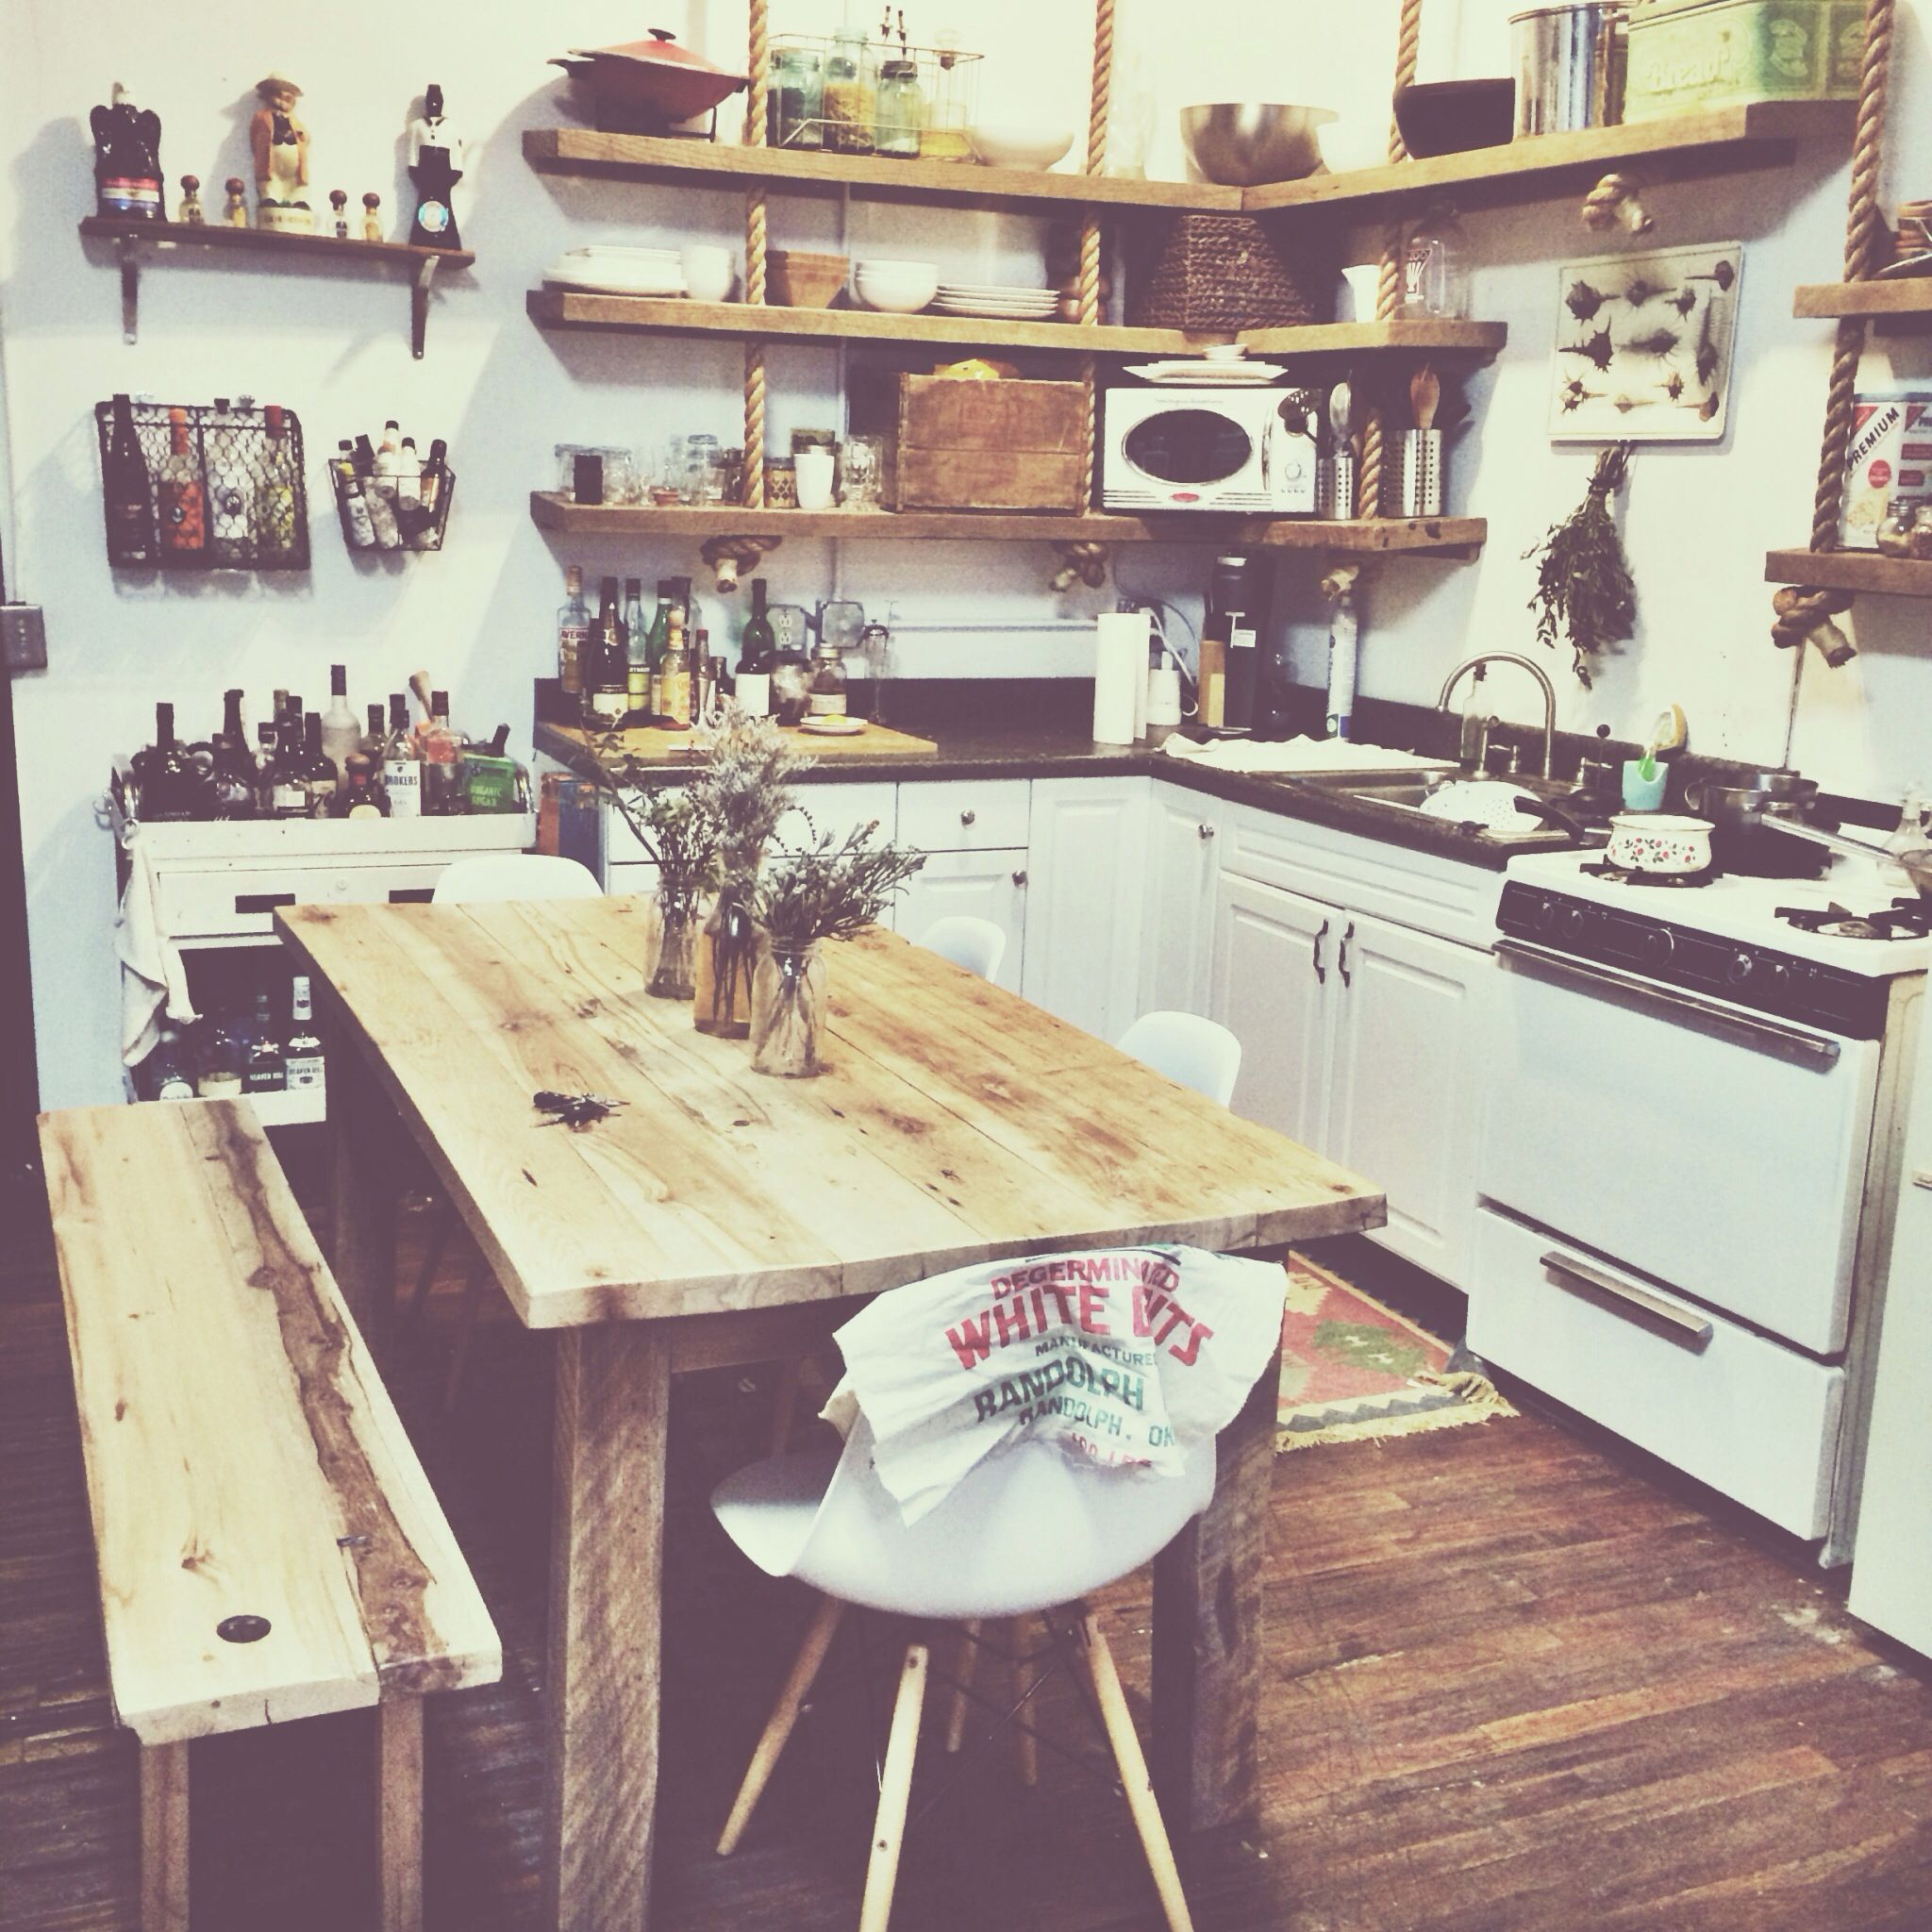 exposed shelves in my loft hippie kitchen home kitchens kitchen inspirations on hippie kitchen ideas boho chic id=67062